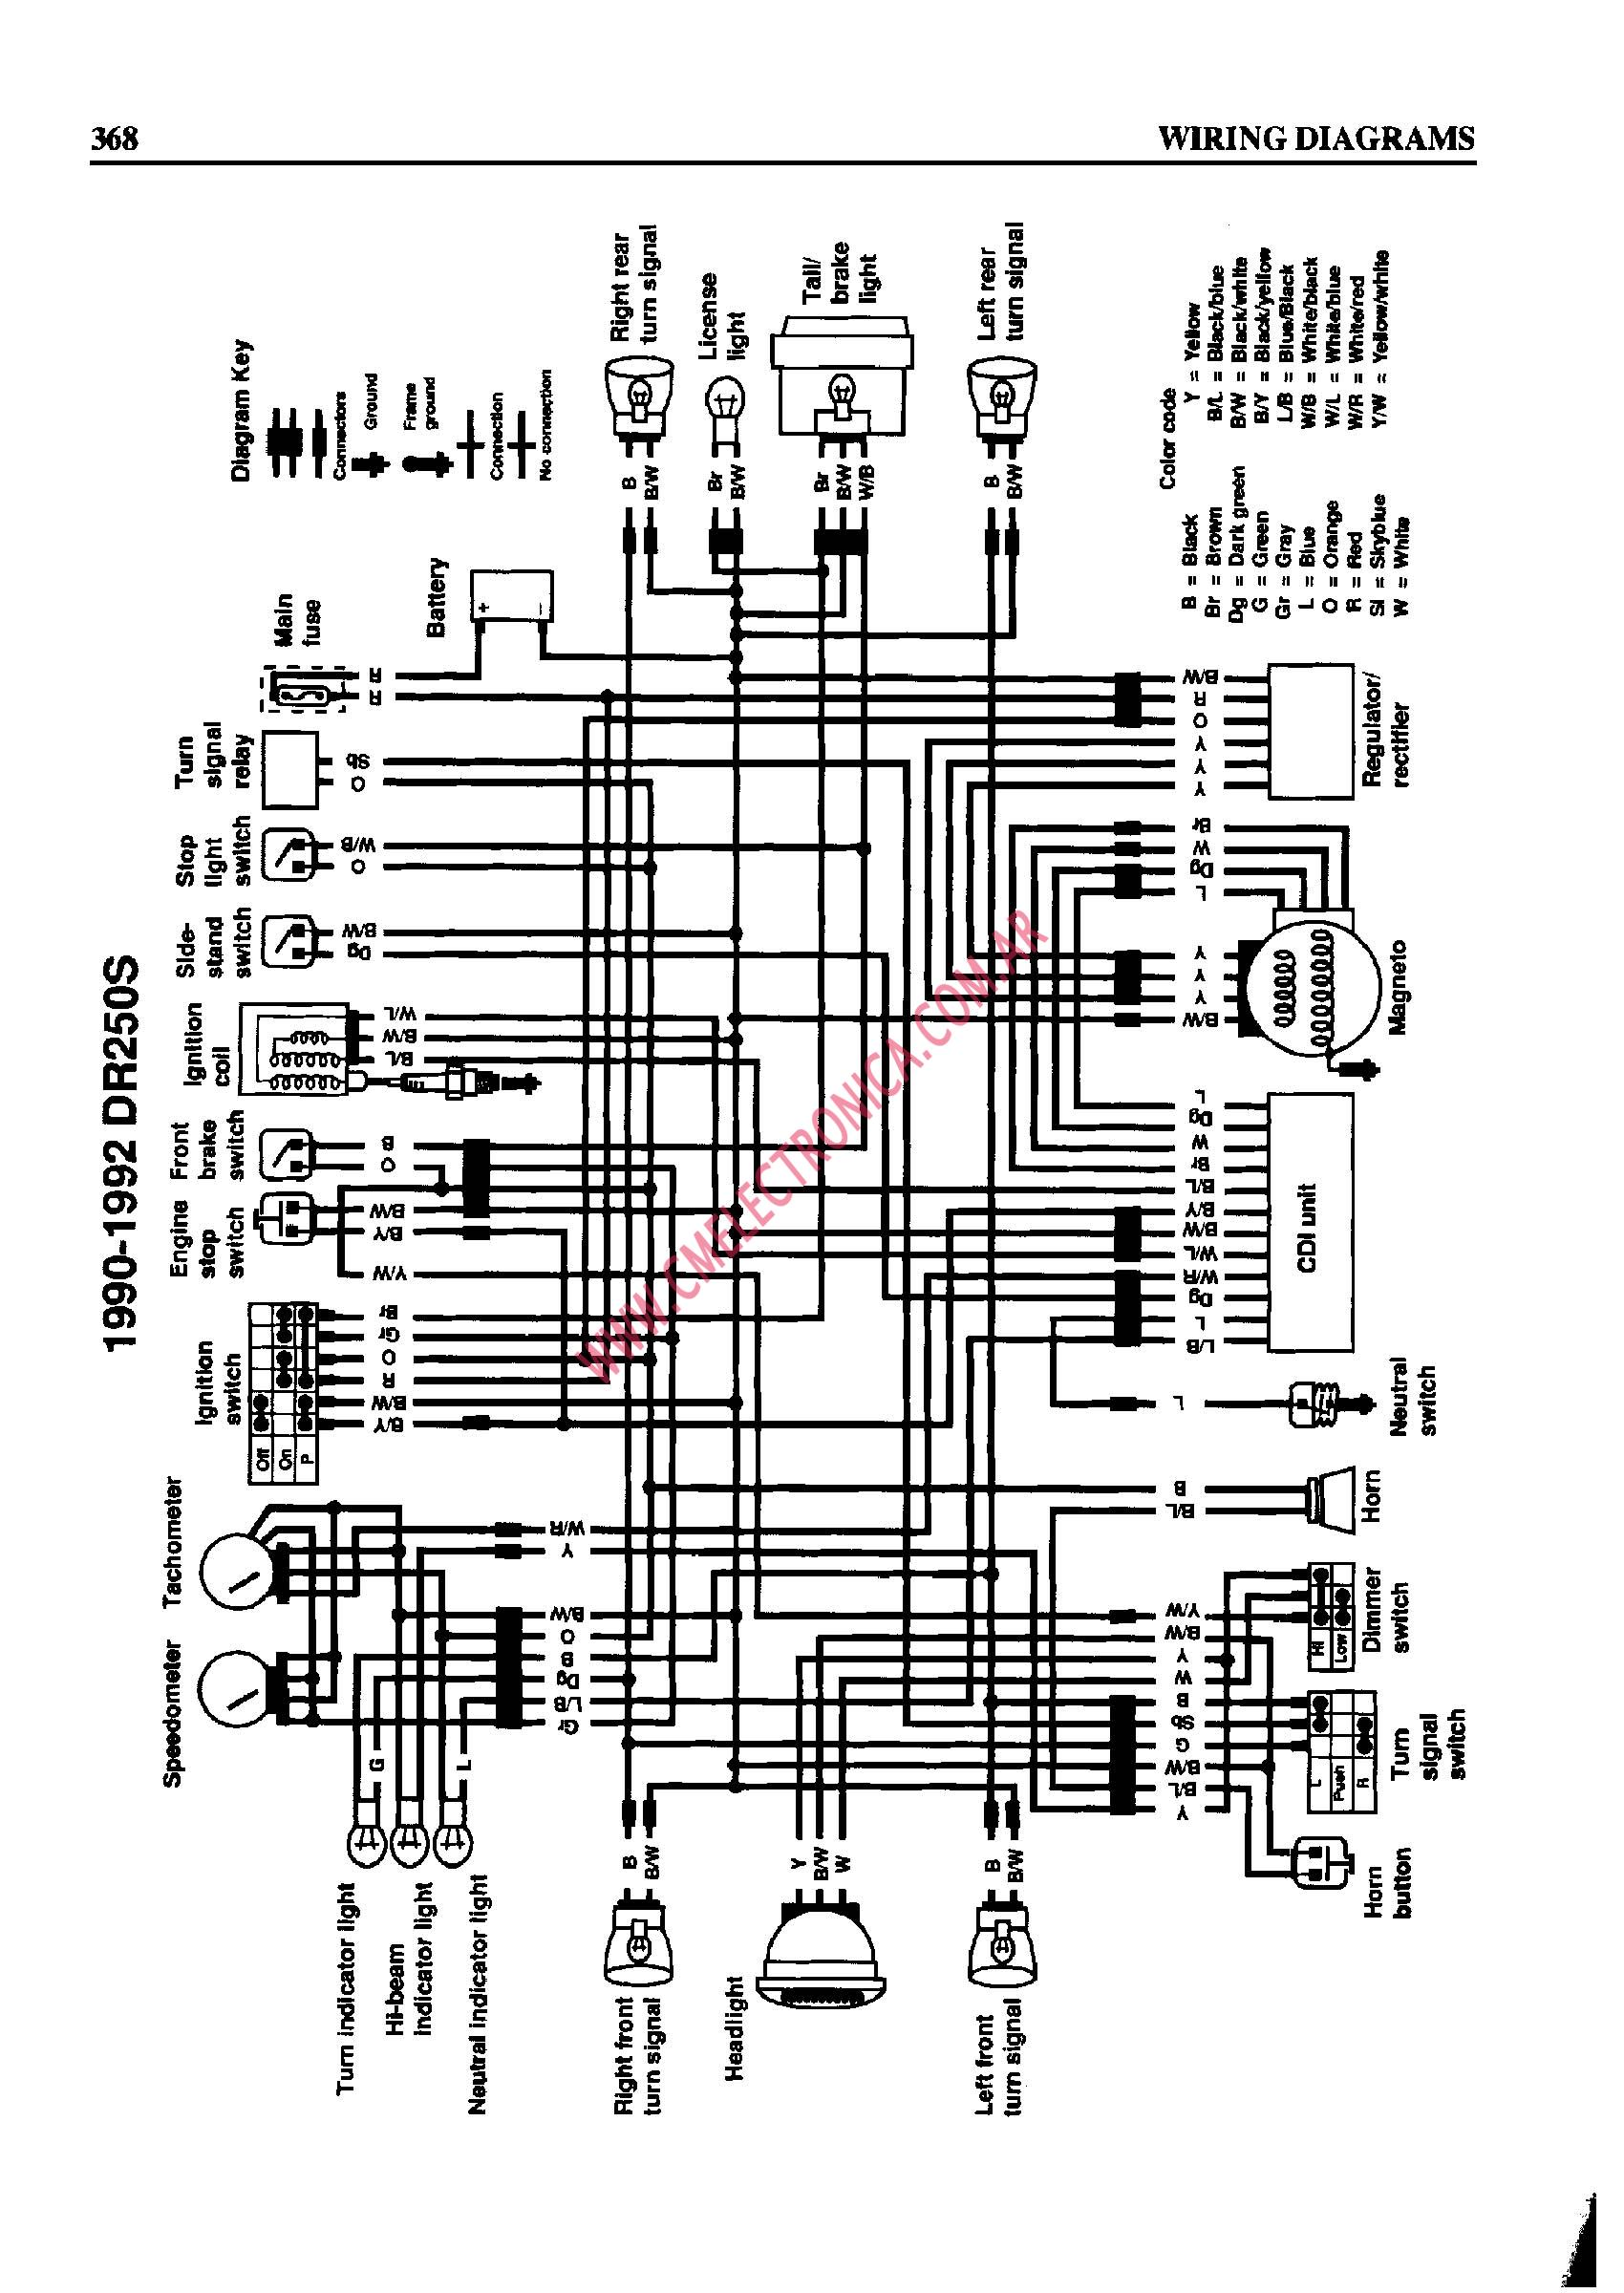 2007 Trailblazer Parts Diagram together with 200730 Part as well 96 Tracker Wiring Diagram additionally Hyundai Xg350 I Light Wiring together with 2002 Toyota Camry Timing Belt Change. on 2003 suzuki grand vitara parts diagram